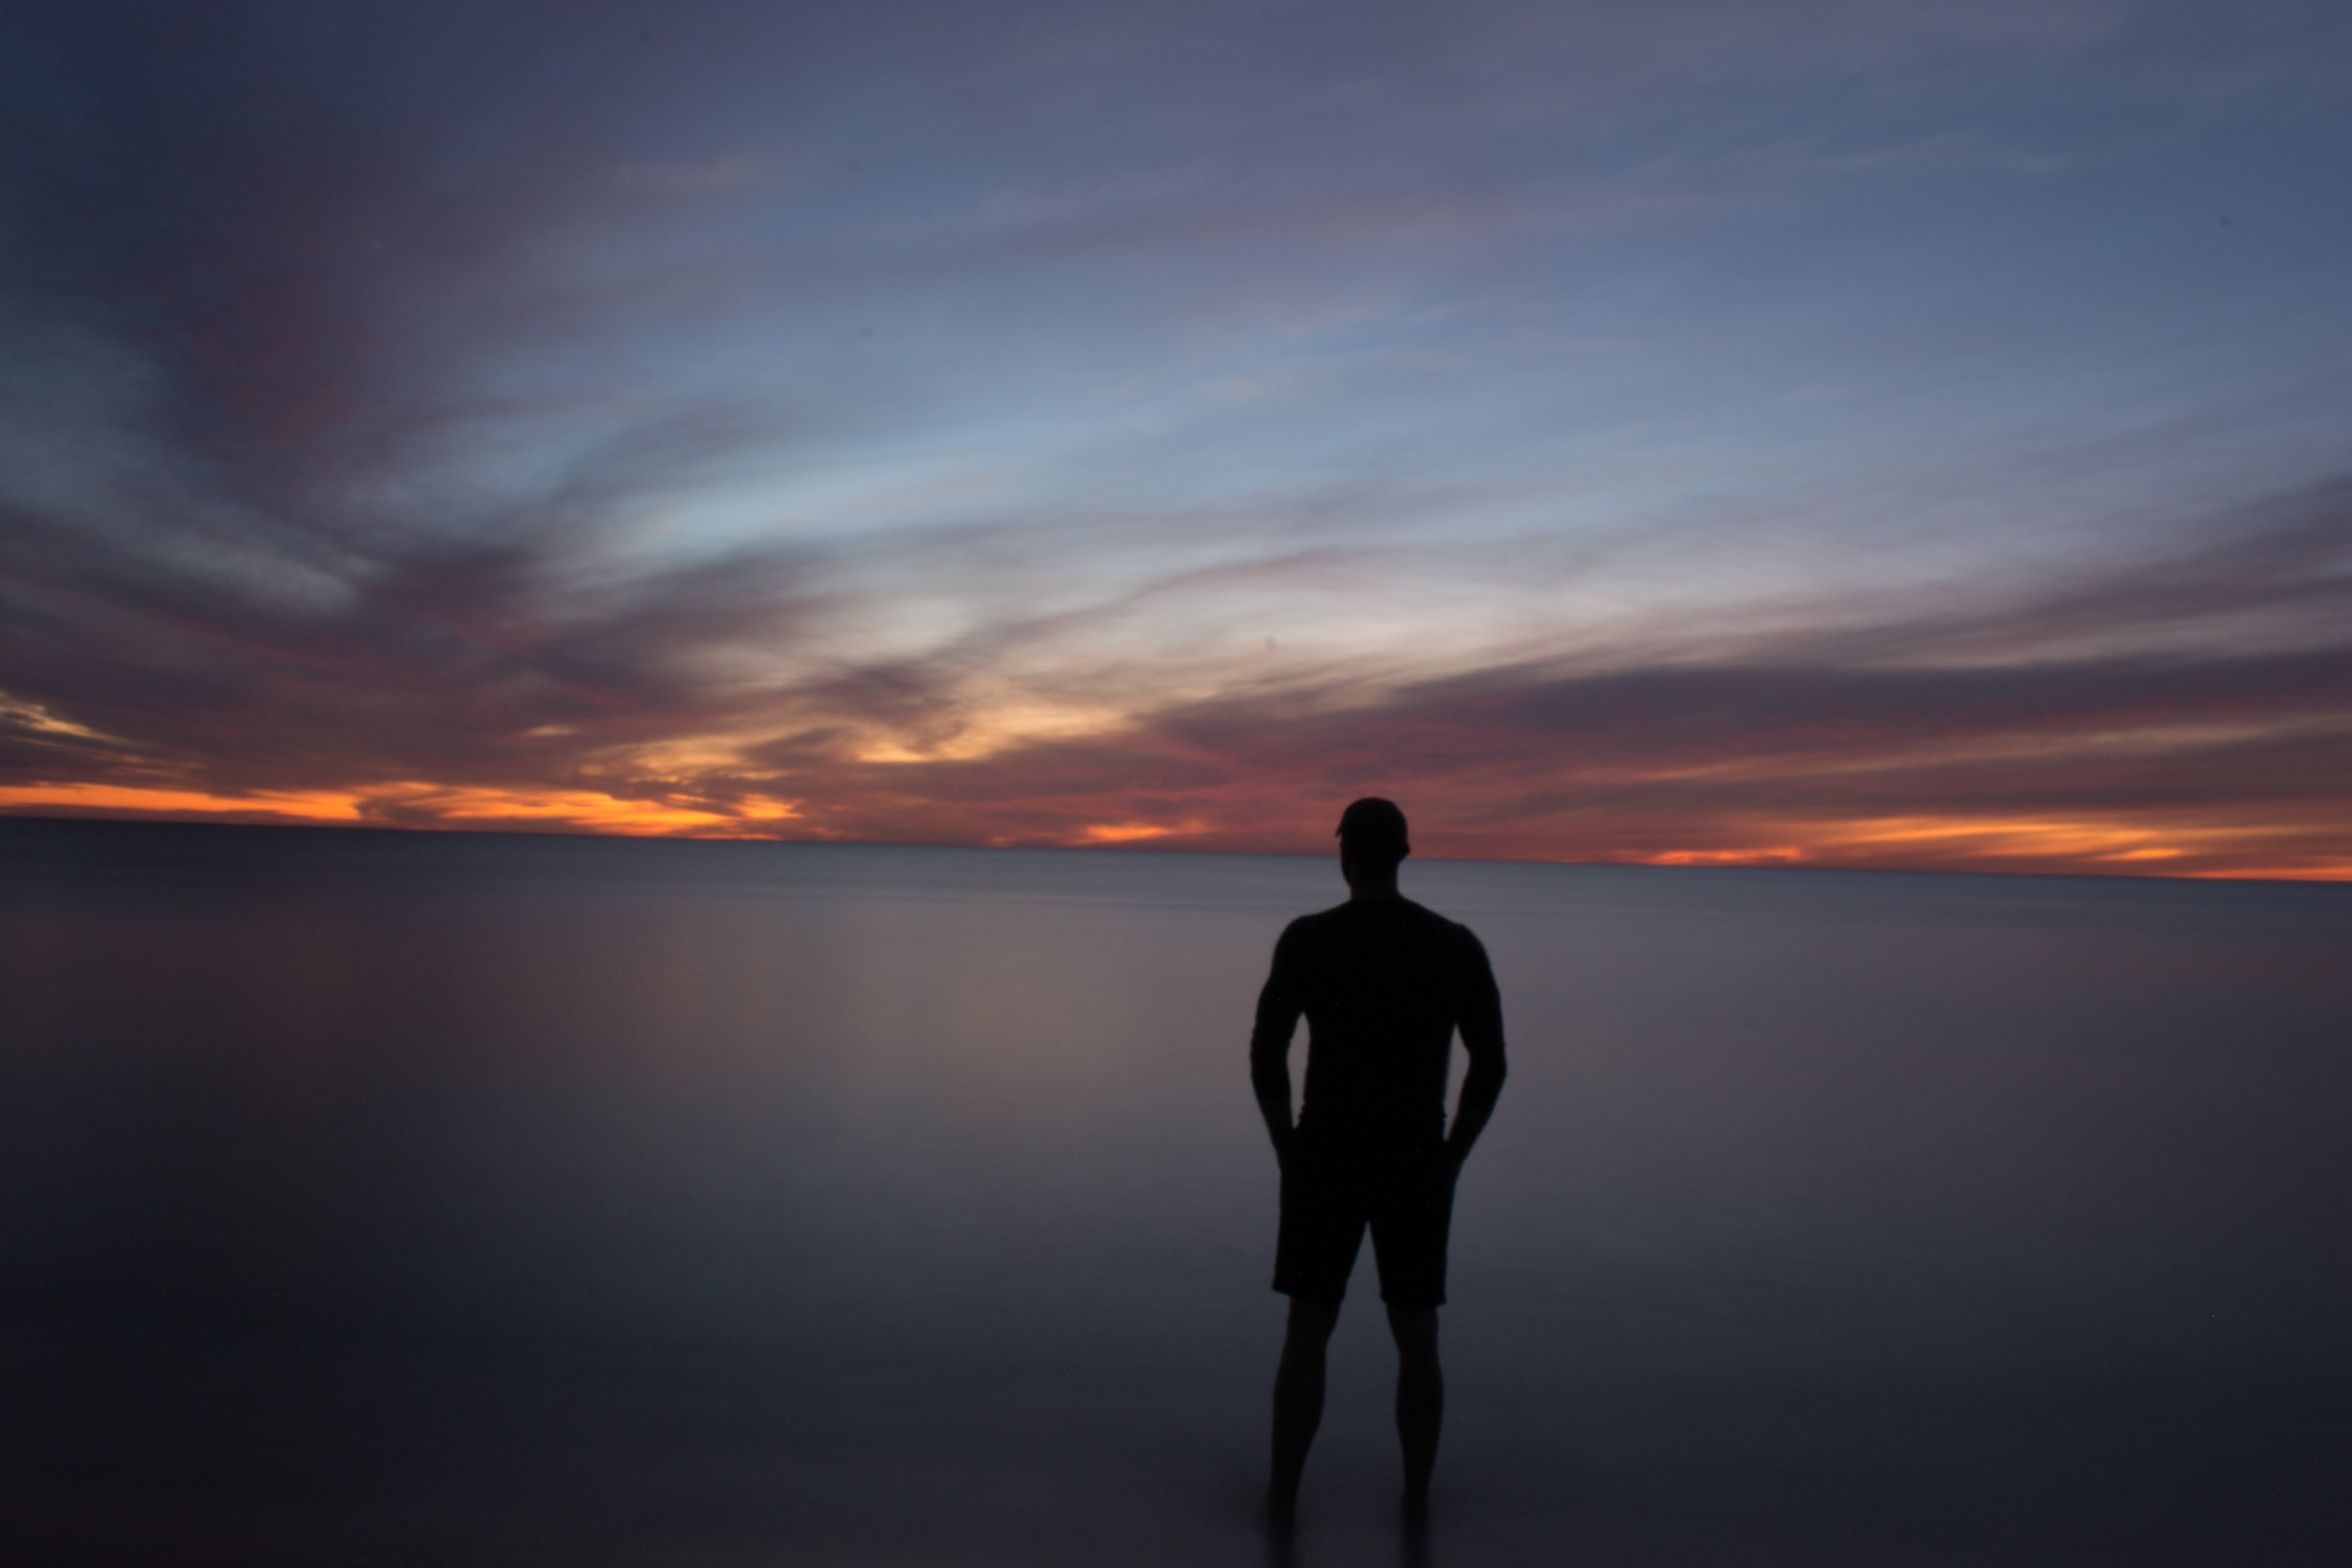 silhouette of person standing near calm body of water during golden hour